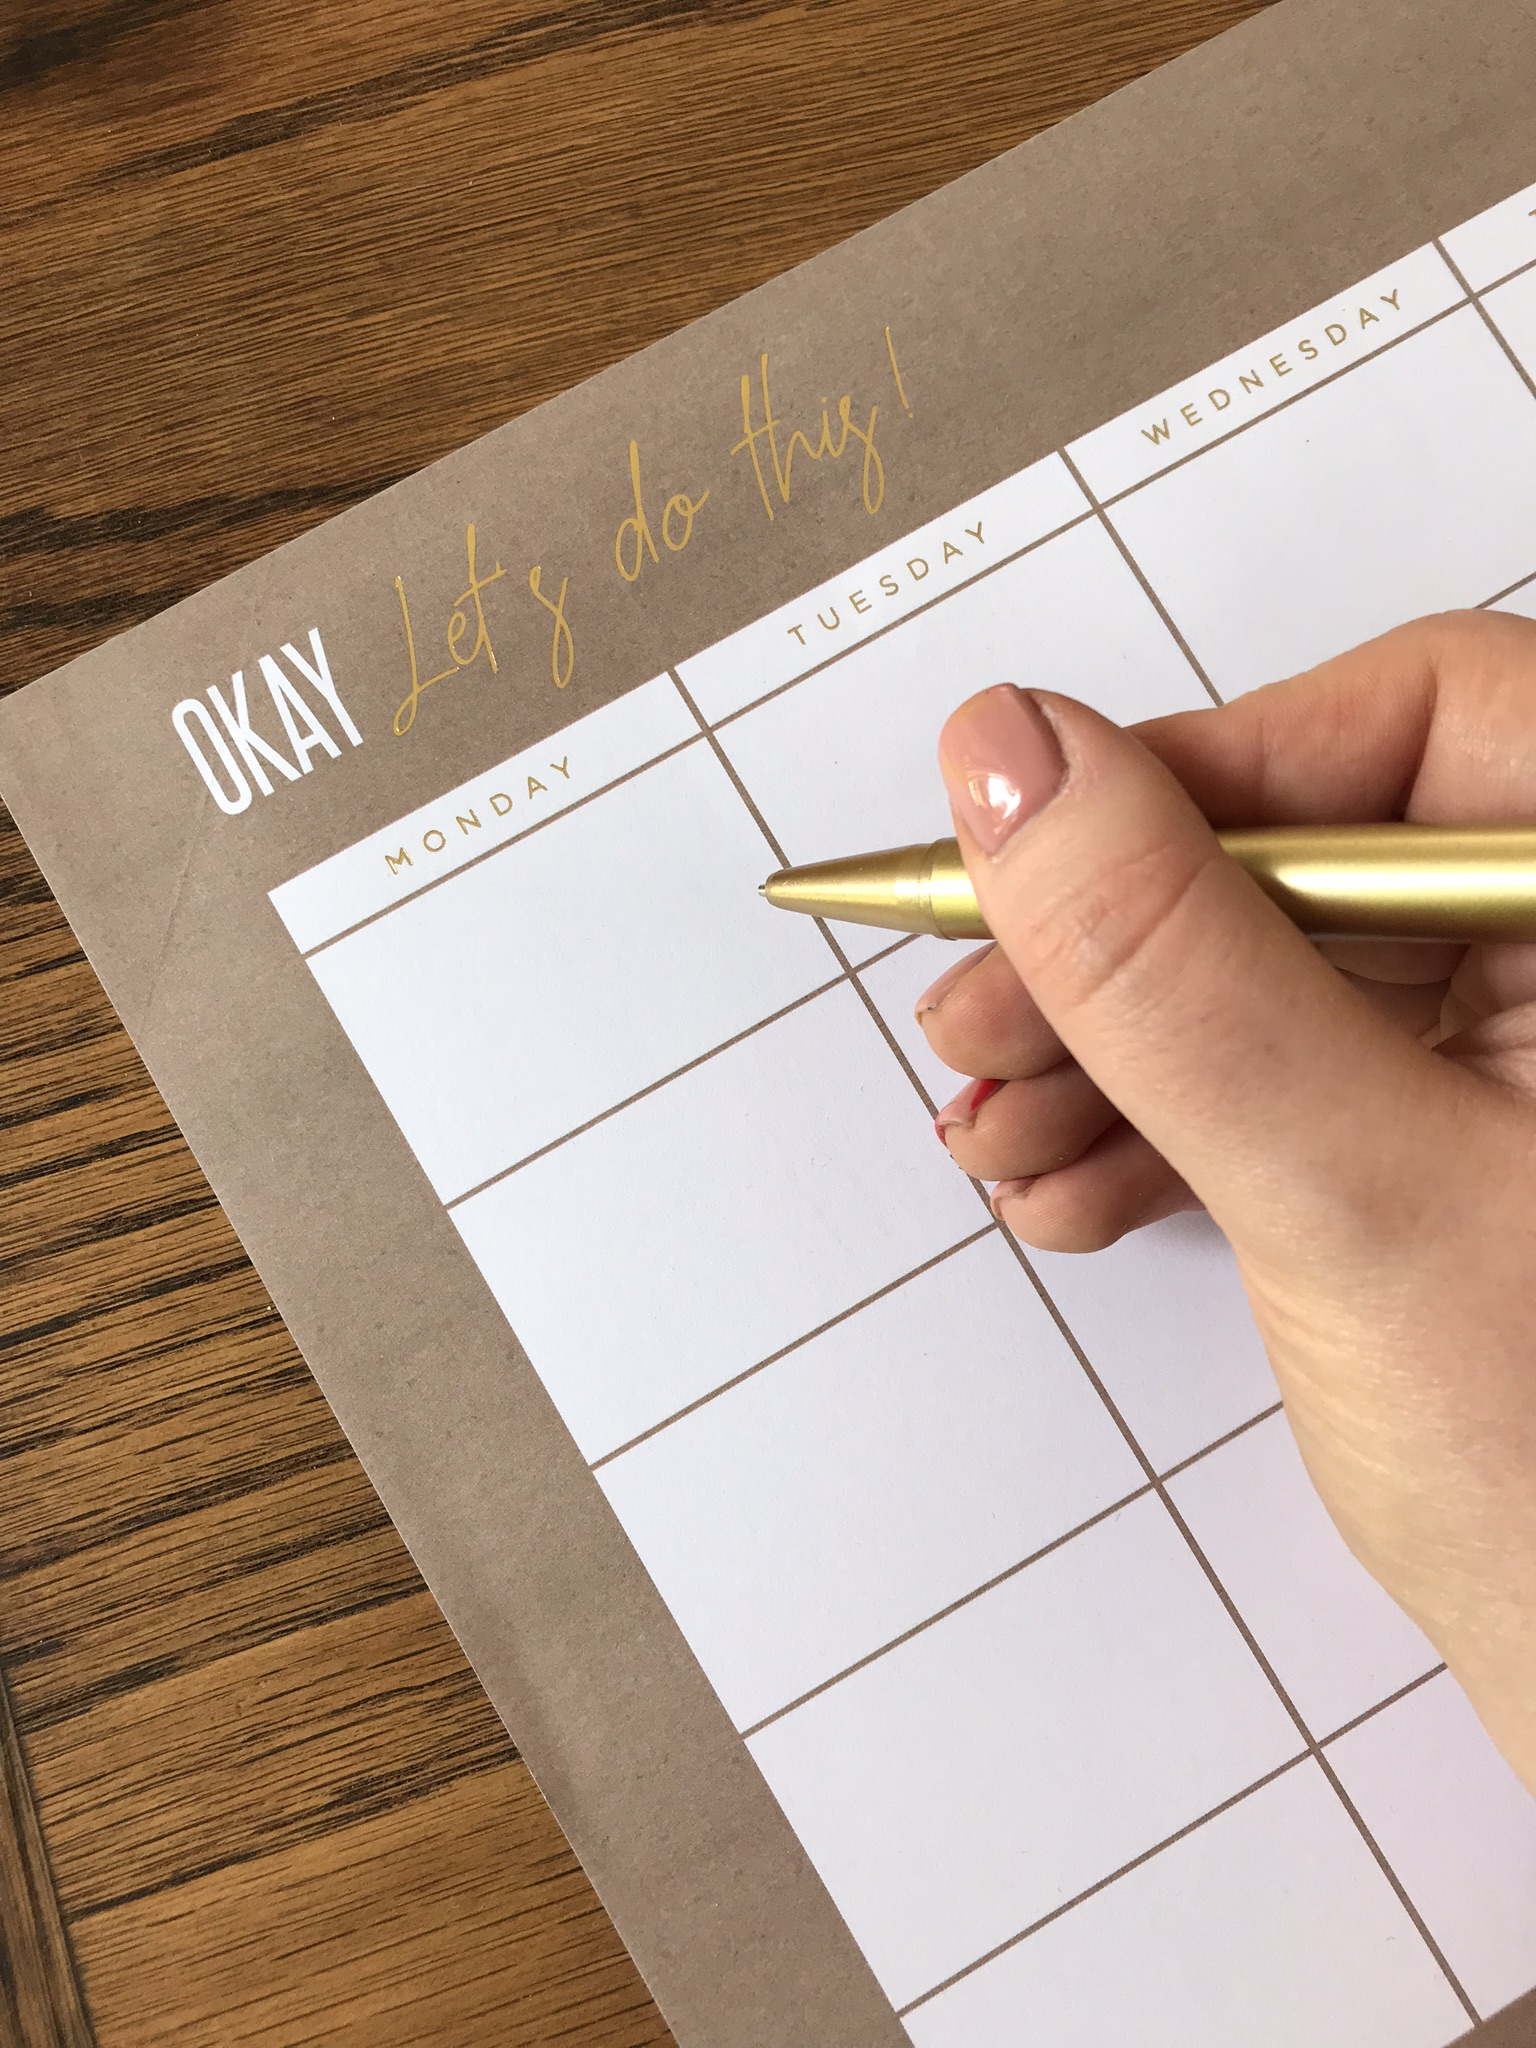 Brand positioning 101 - Danielle's hand writing in a planner